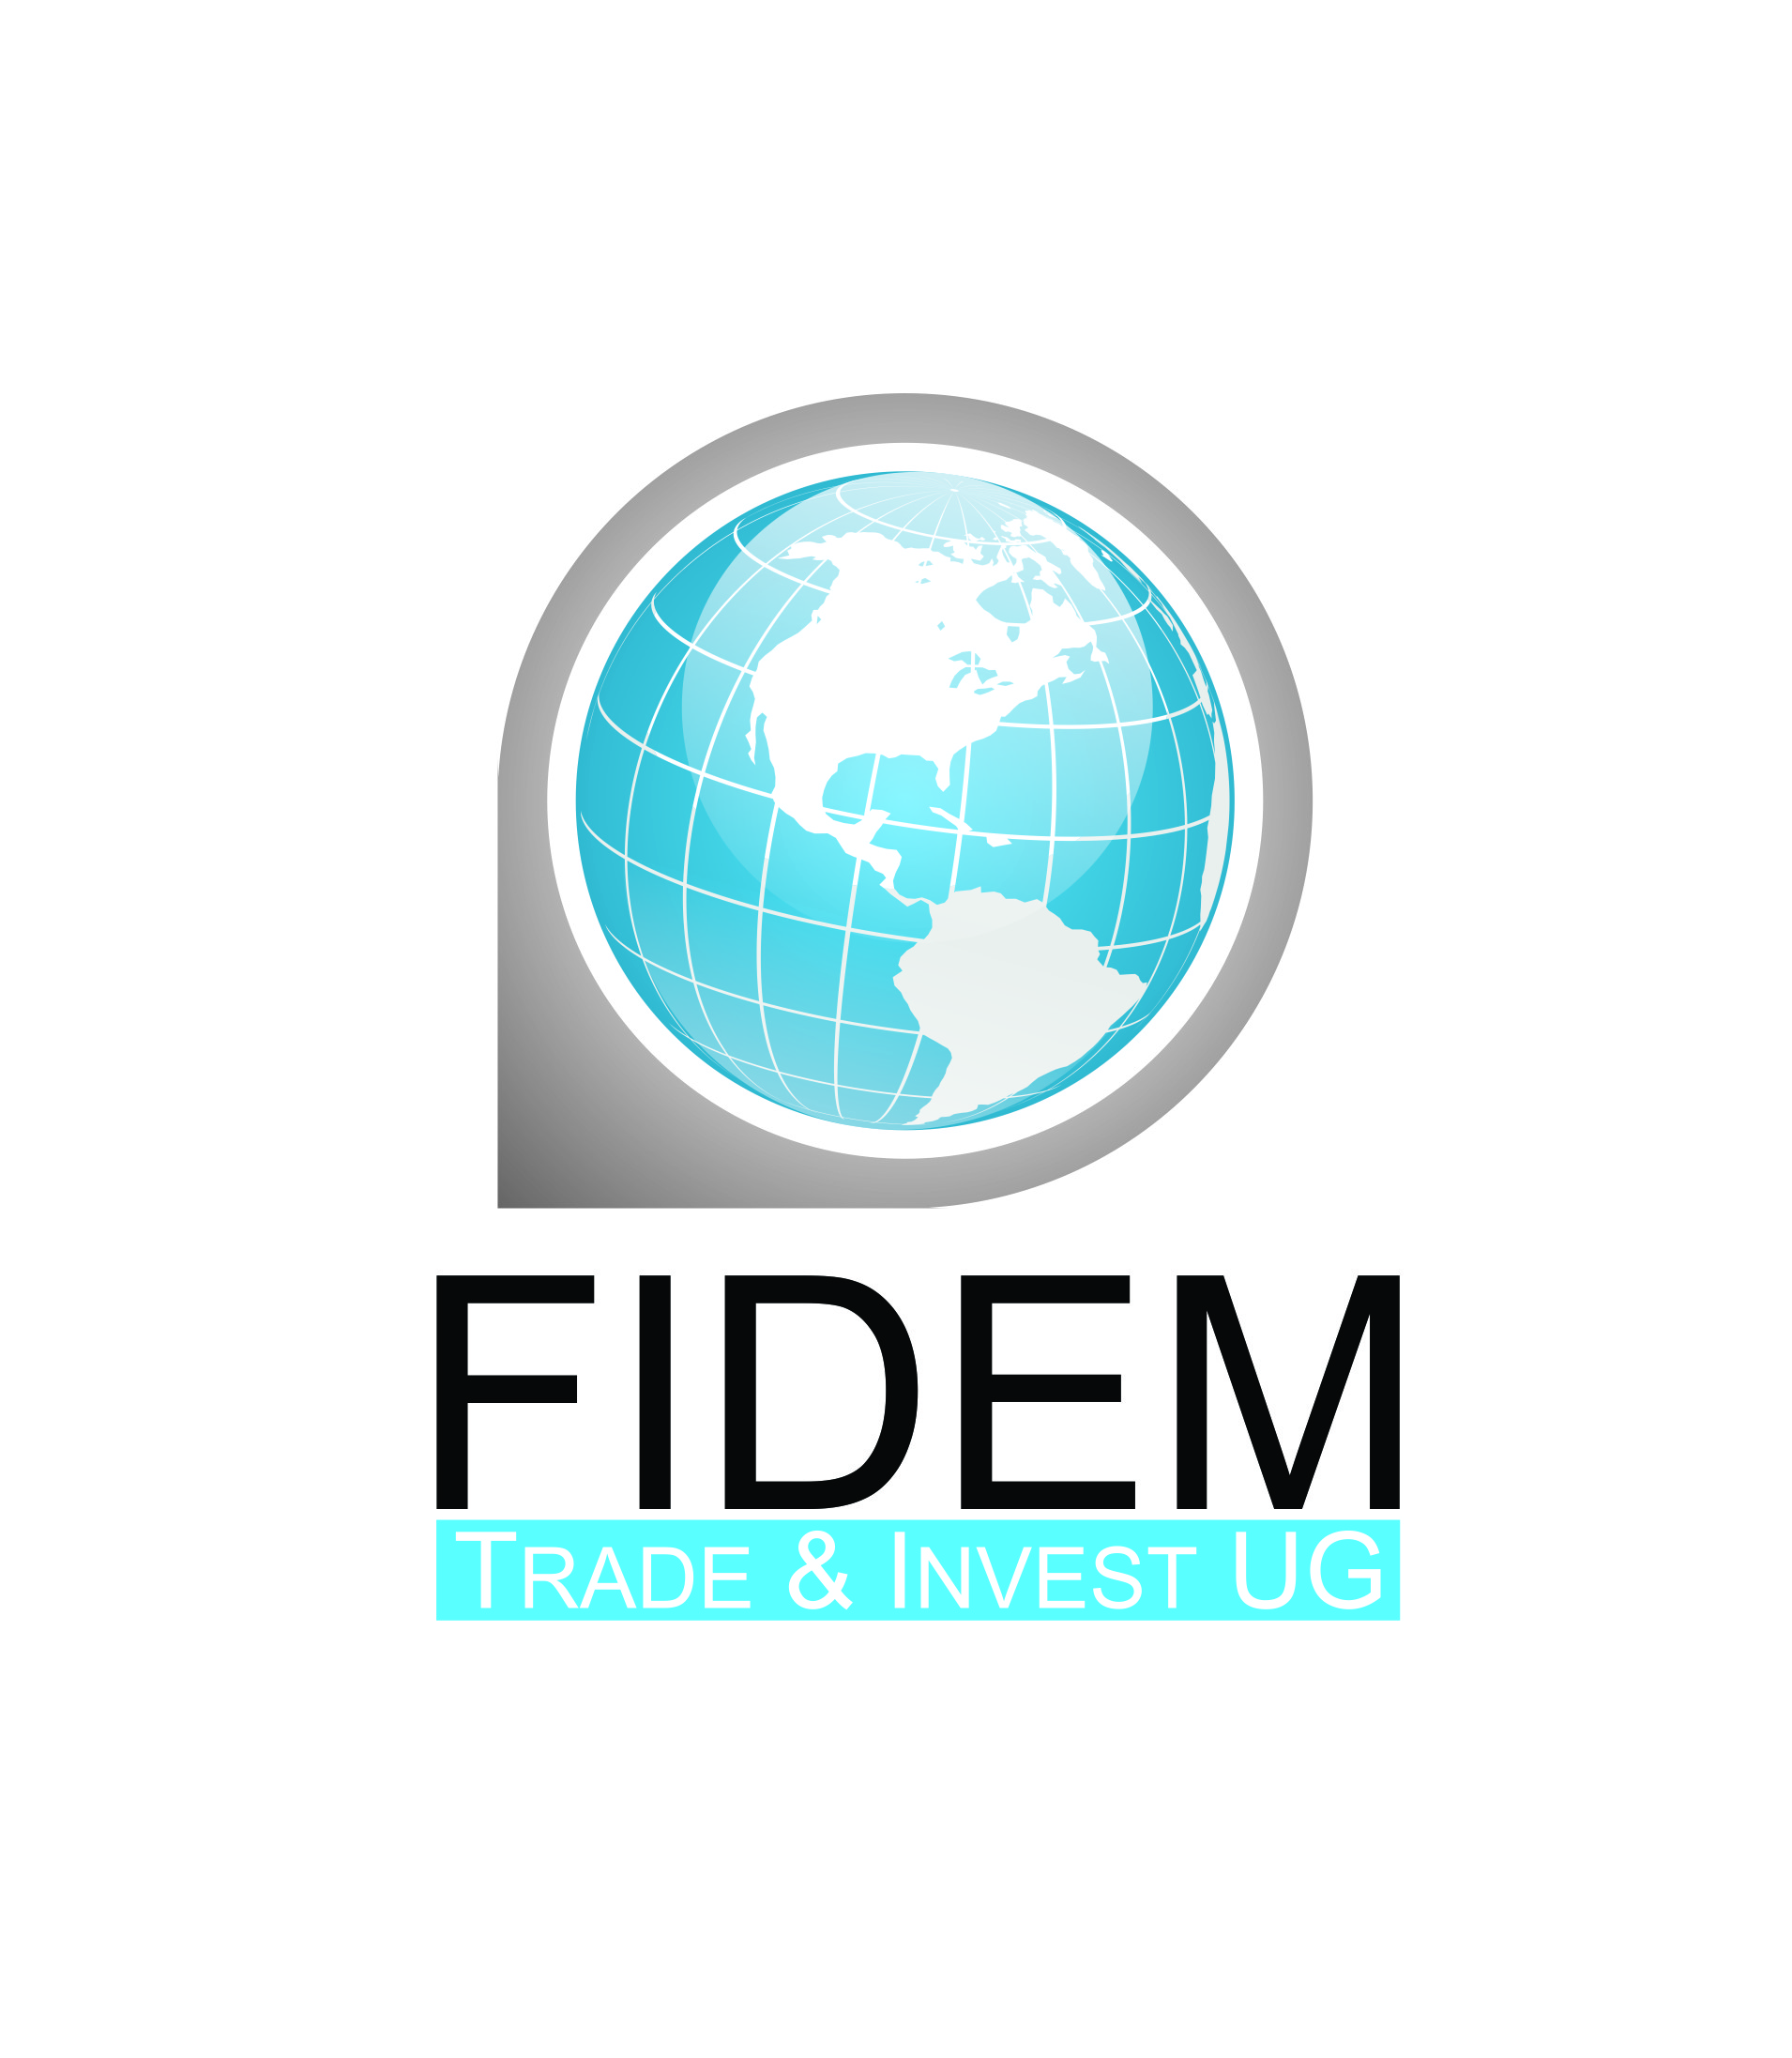 Logo Design by Crispin Jr Vasquez - Entry No. 487 in the Logo Design Contest Professional Logo Design for FIDEM Trade & Invest UG.